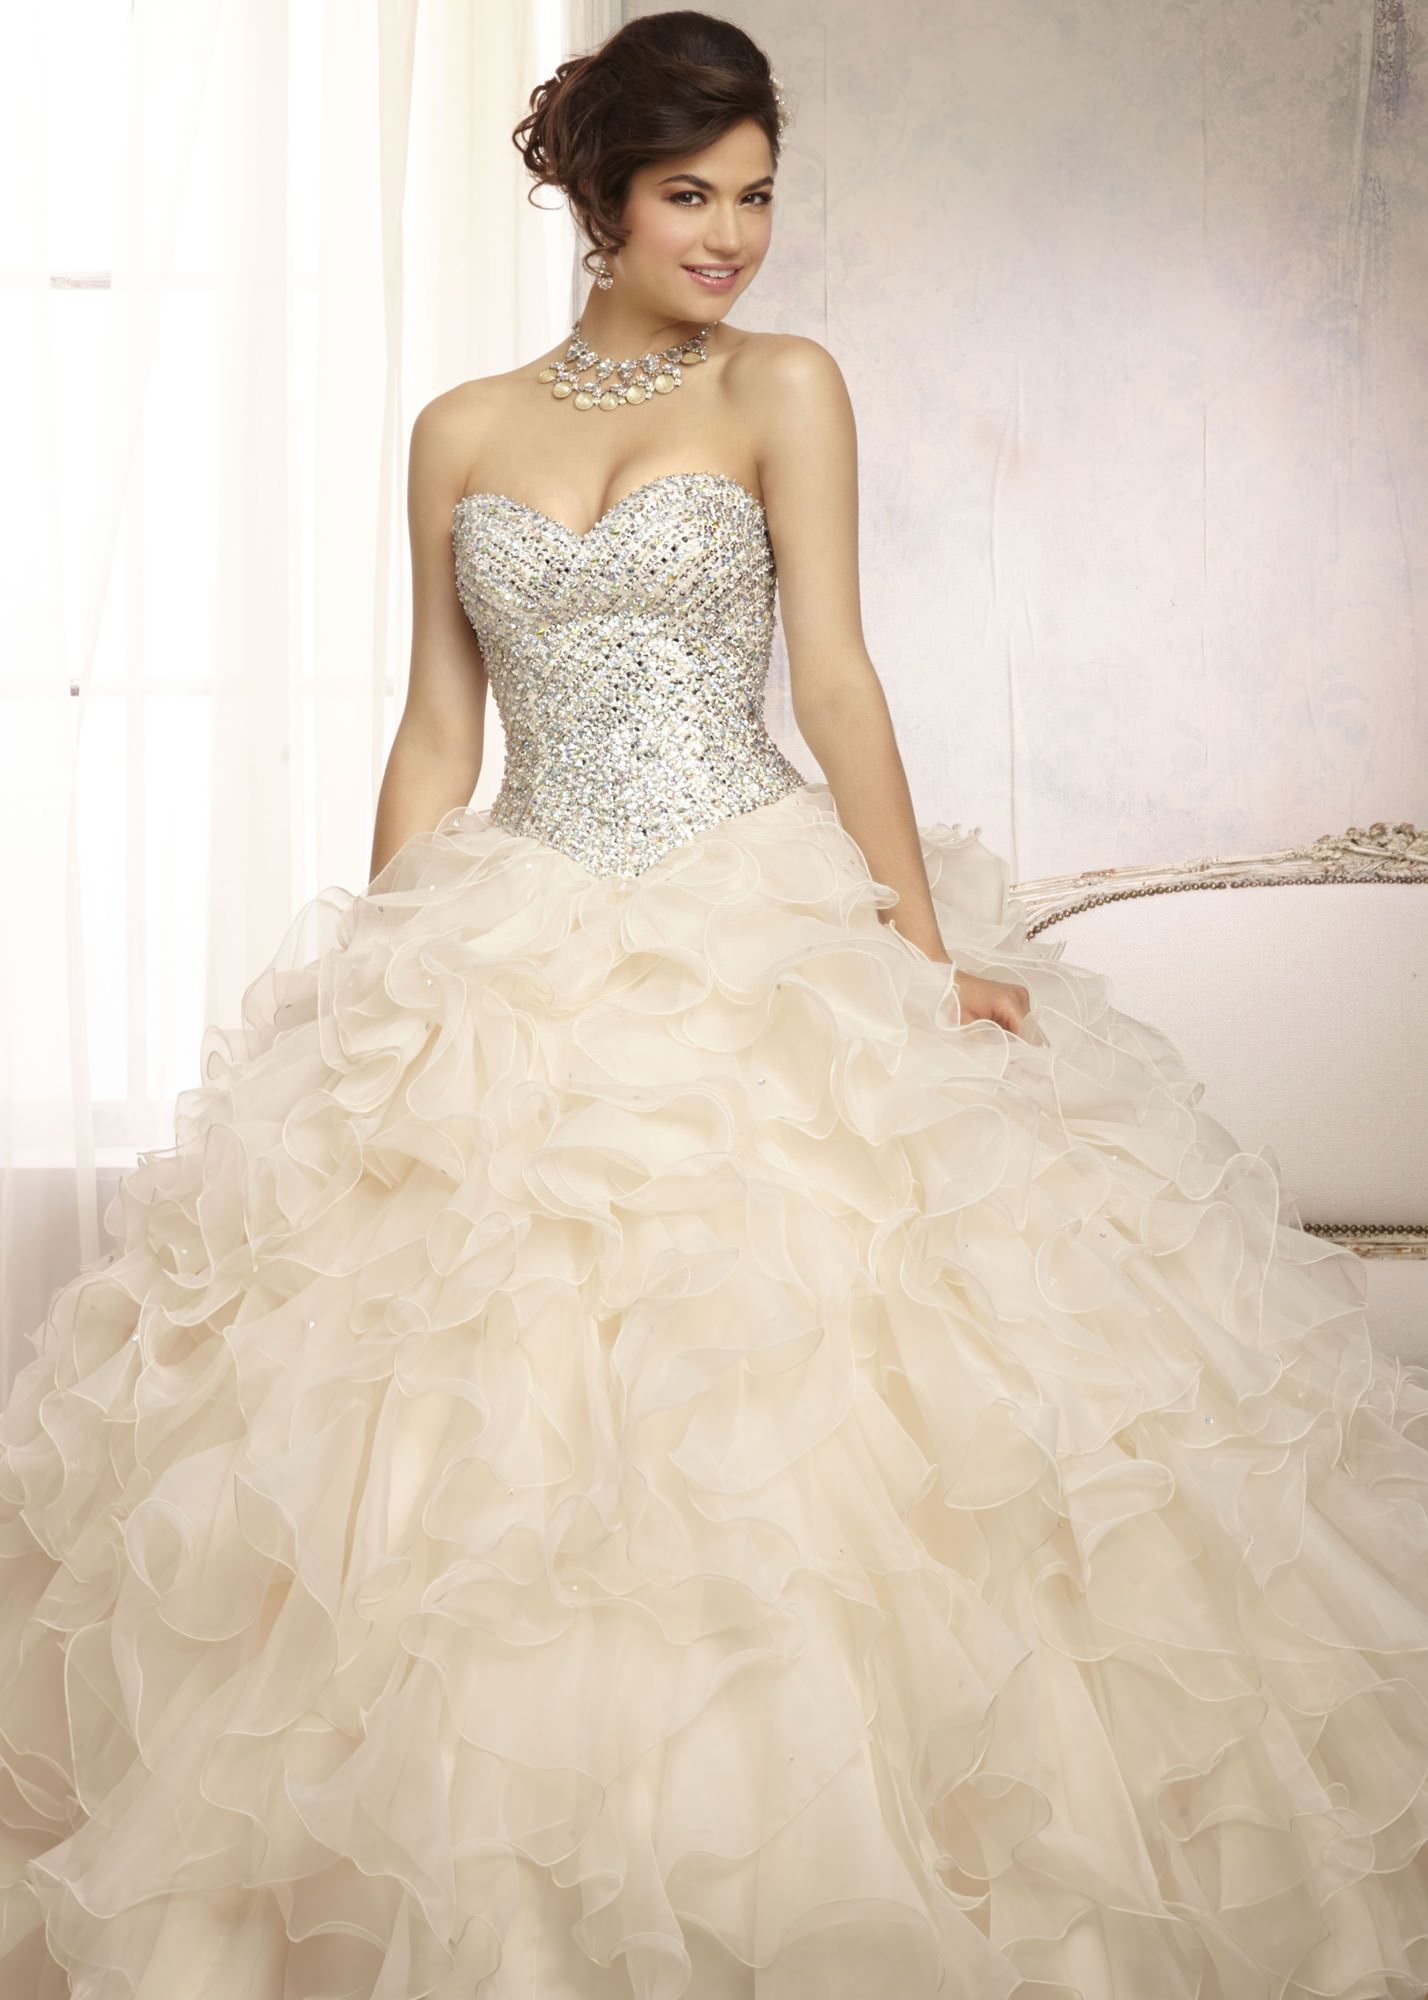 0351e399472 Vizcaya 88089 - Champagne Beaded Quinceanera Dresses - RissyRoos.com ...